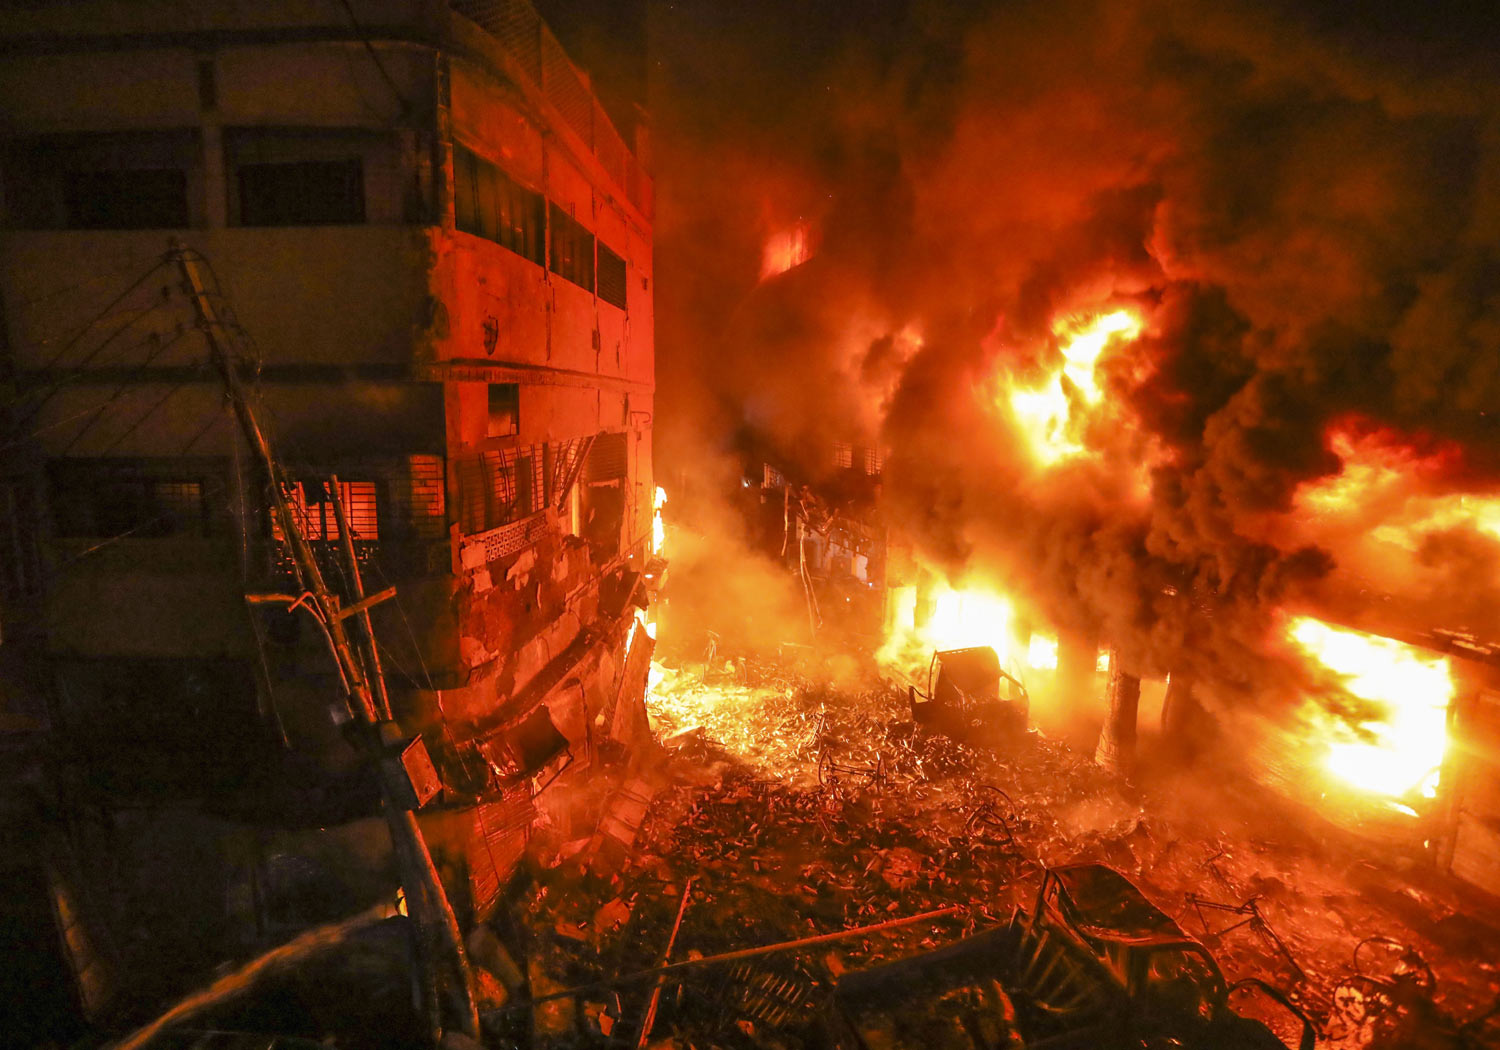 Flames rise from a densely packed shopping area in Dhaka, Bangladesh, Thursday, Feb. 21, 2019. The devastating fire raced through several buildings in an old part of Bangladesh's capital, killing scores of people. (AP Photo/Zabed Hasnain Chowdhury)